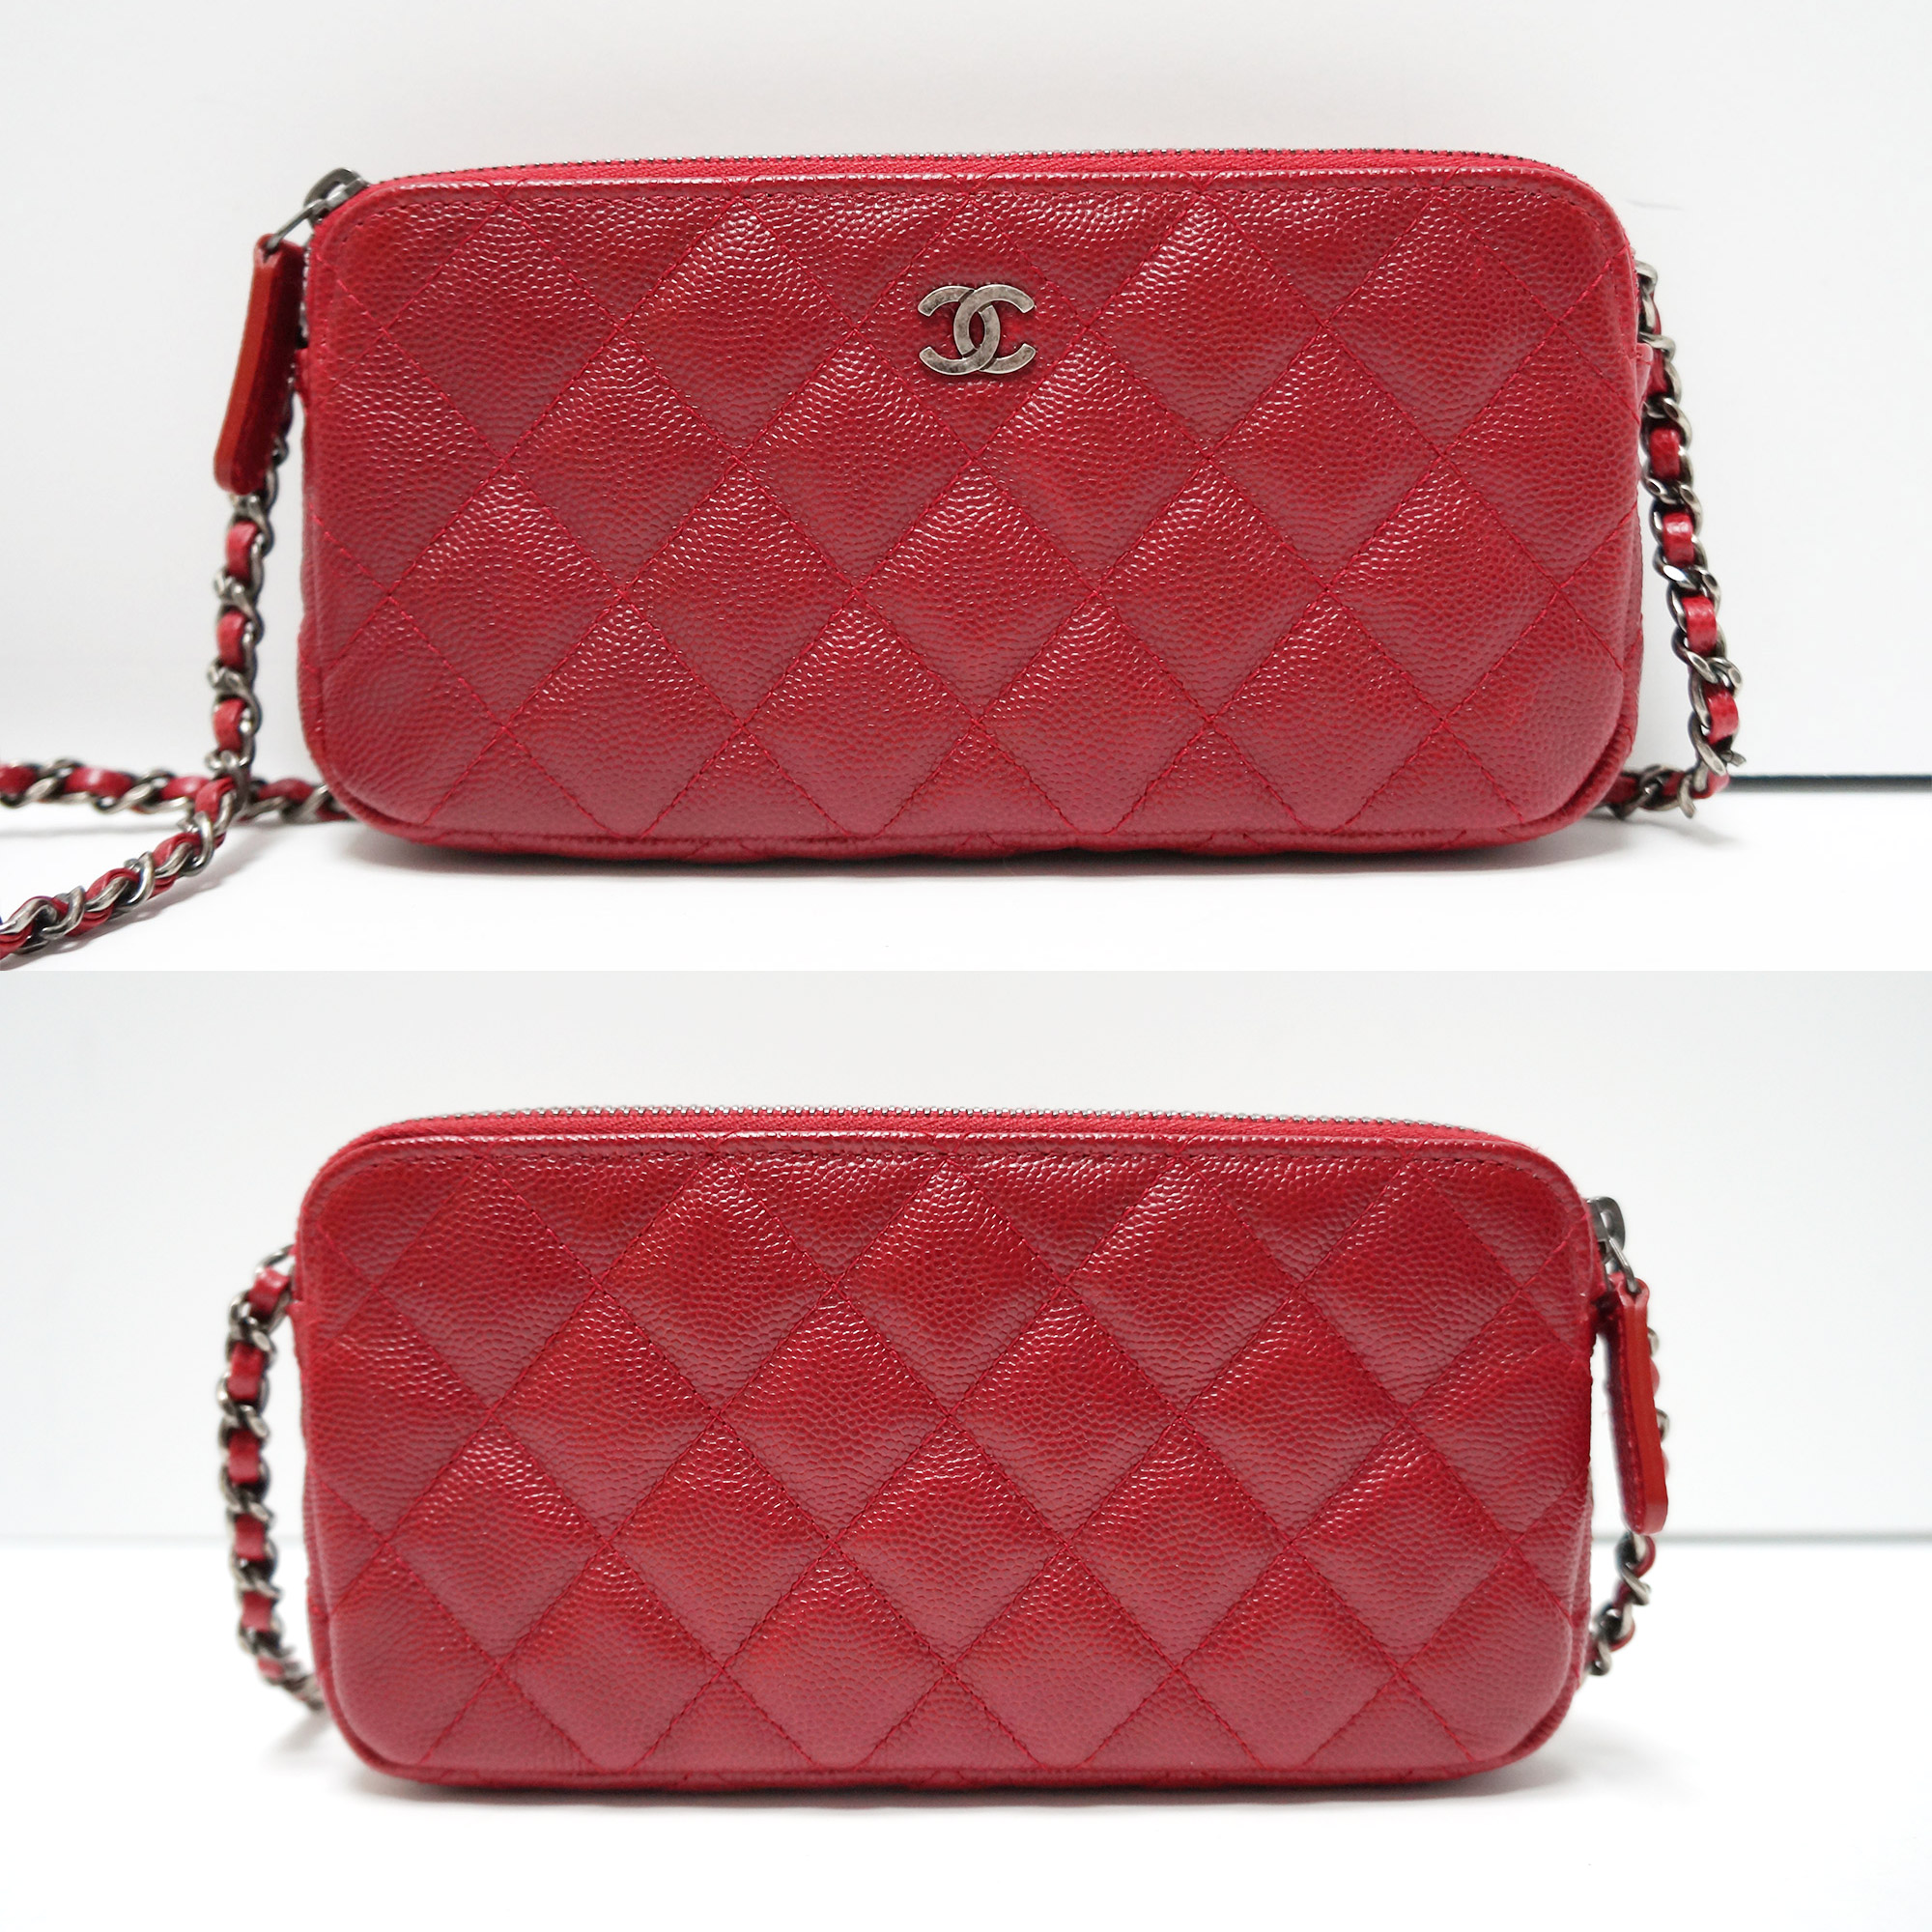 55a7492fdb13 Chanel Wallet Bag Red | Stanford Center for Opportunity Policy in ...